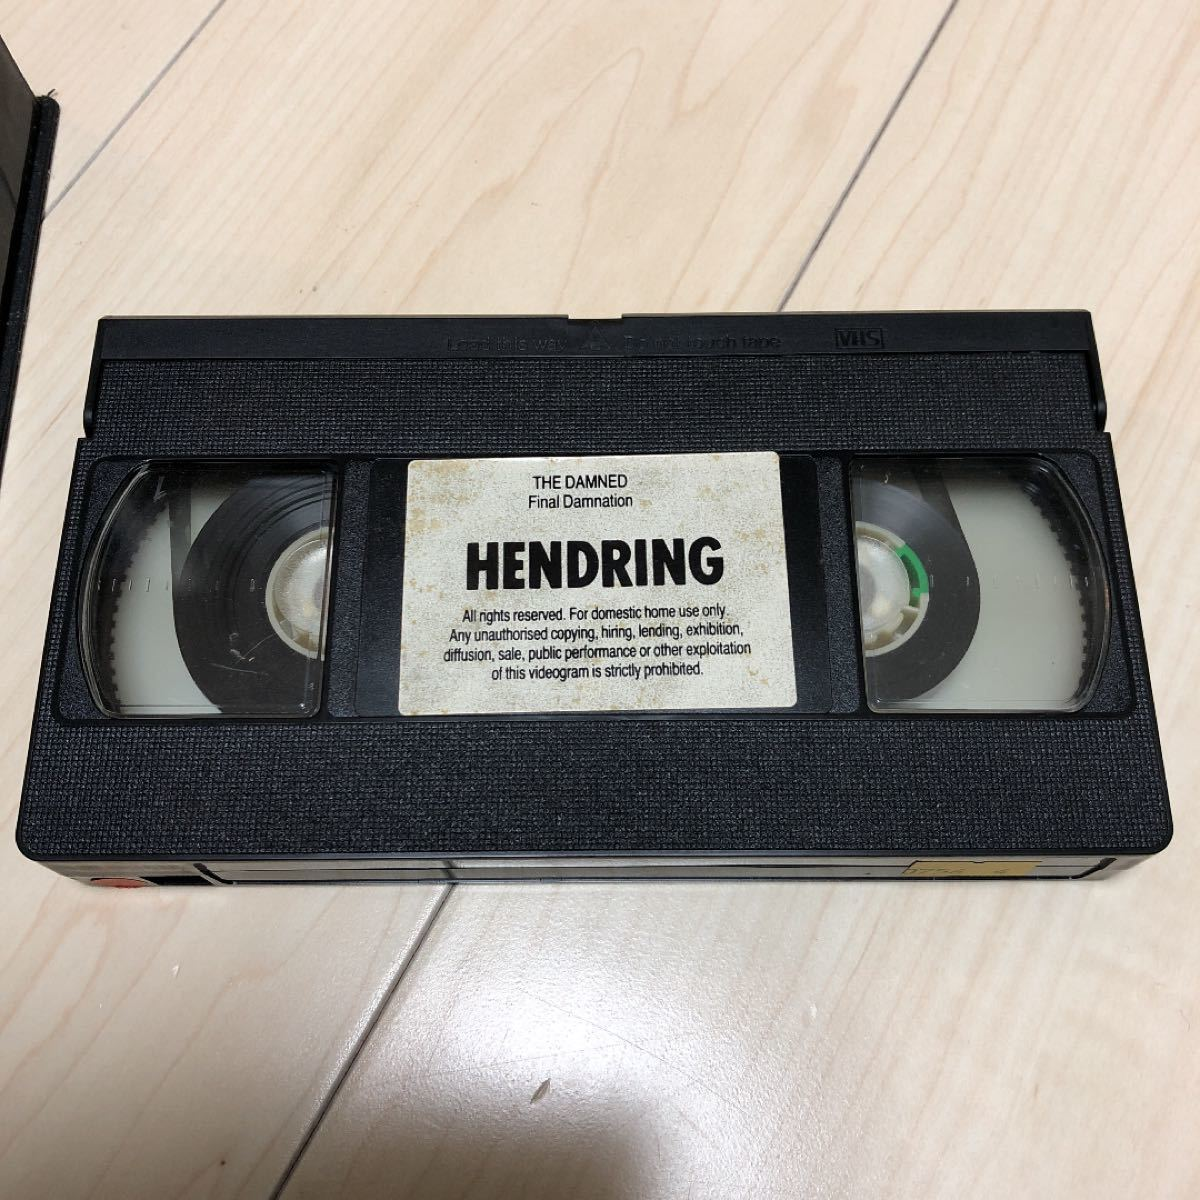 THE DAMNED VHS